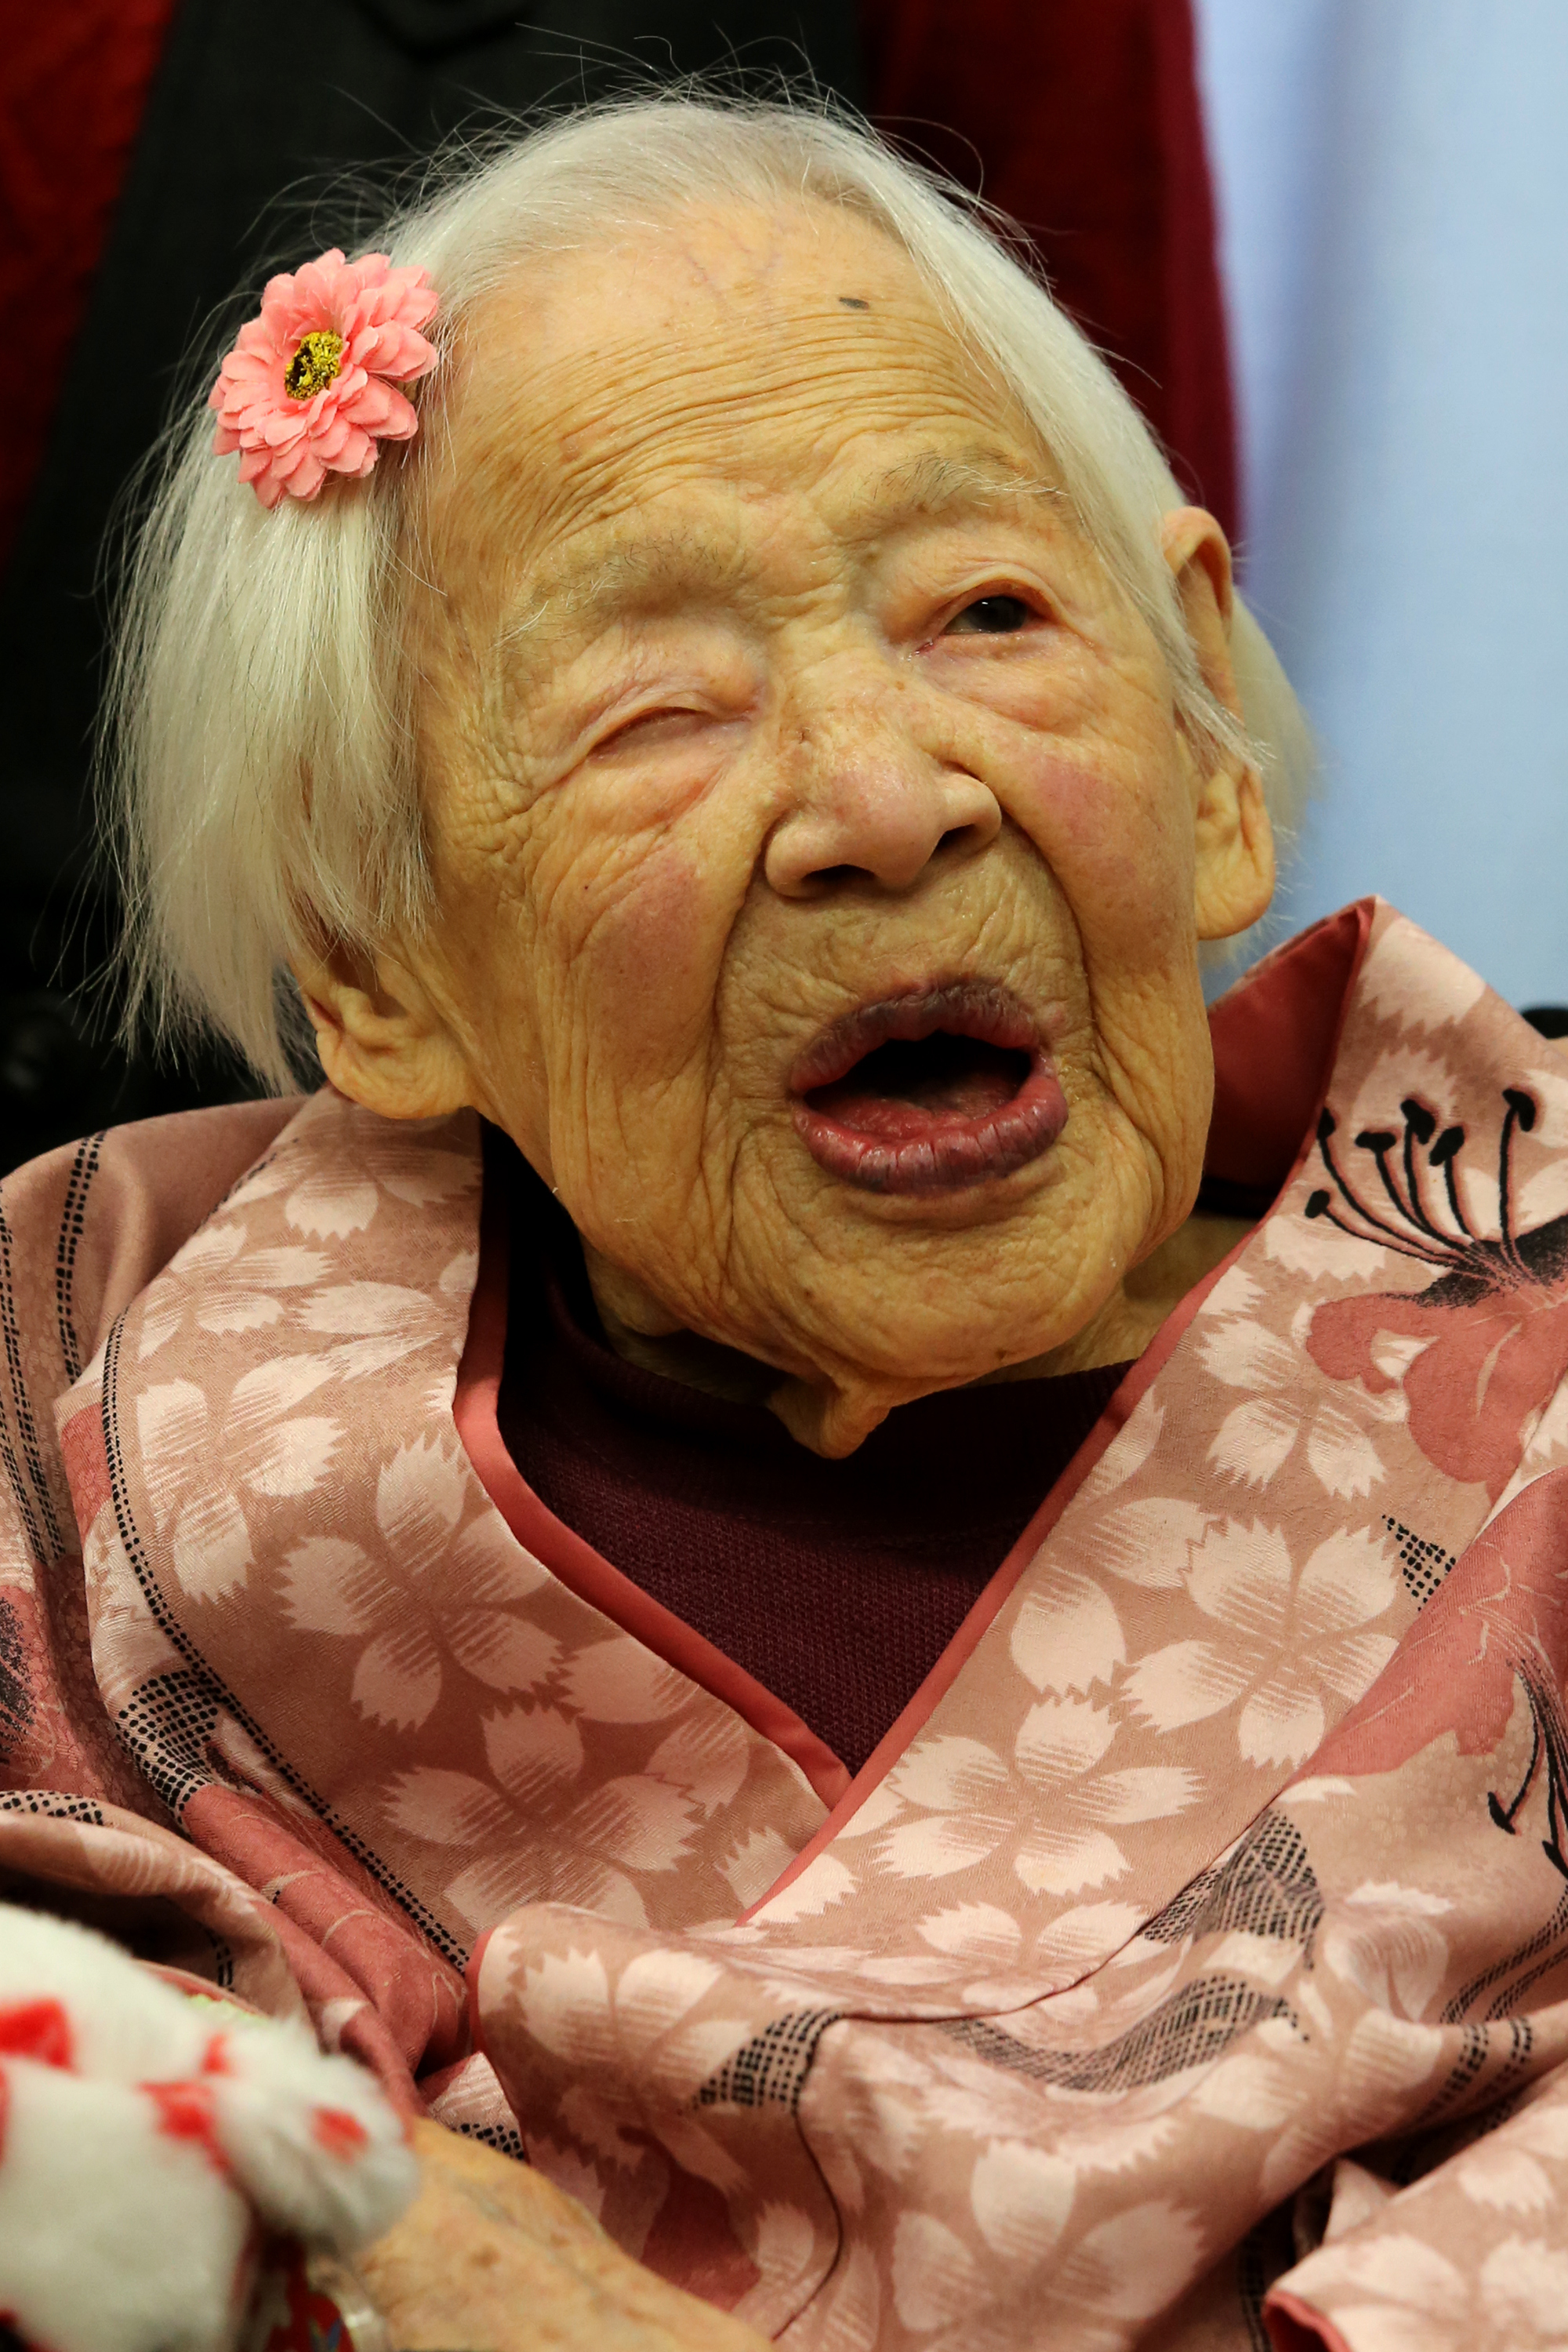 The World's Oldest Person, Misao Okawa, Has Died in Japan